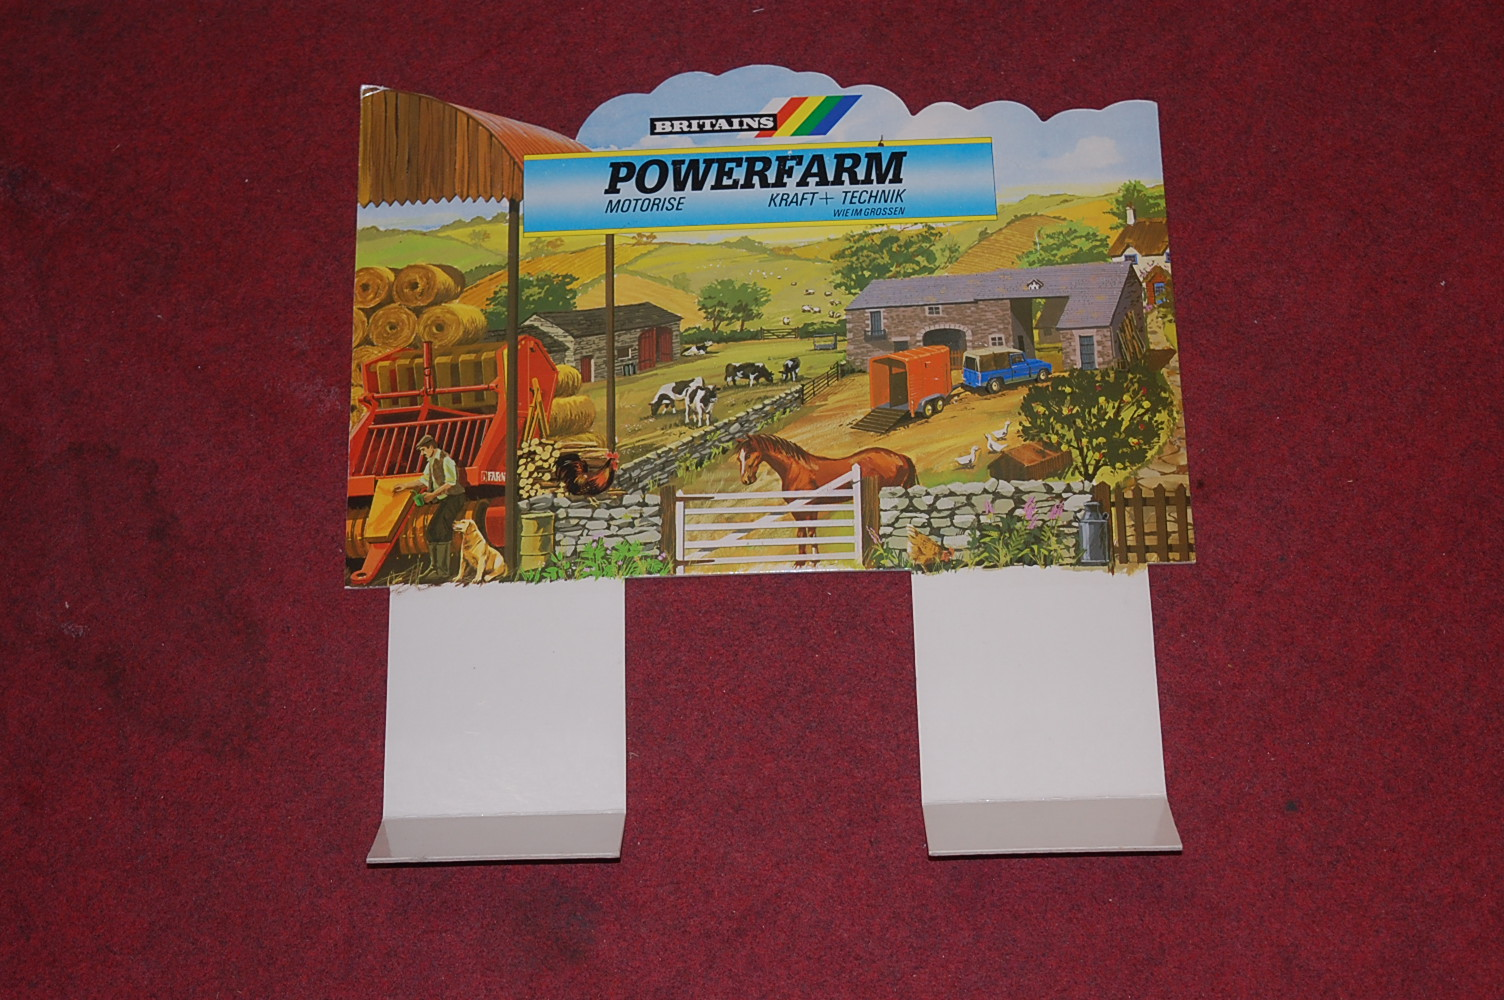 A Britains Power Farm battery operated shop display model of a rolling road, constructed in card - Image 2 of 4